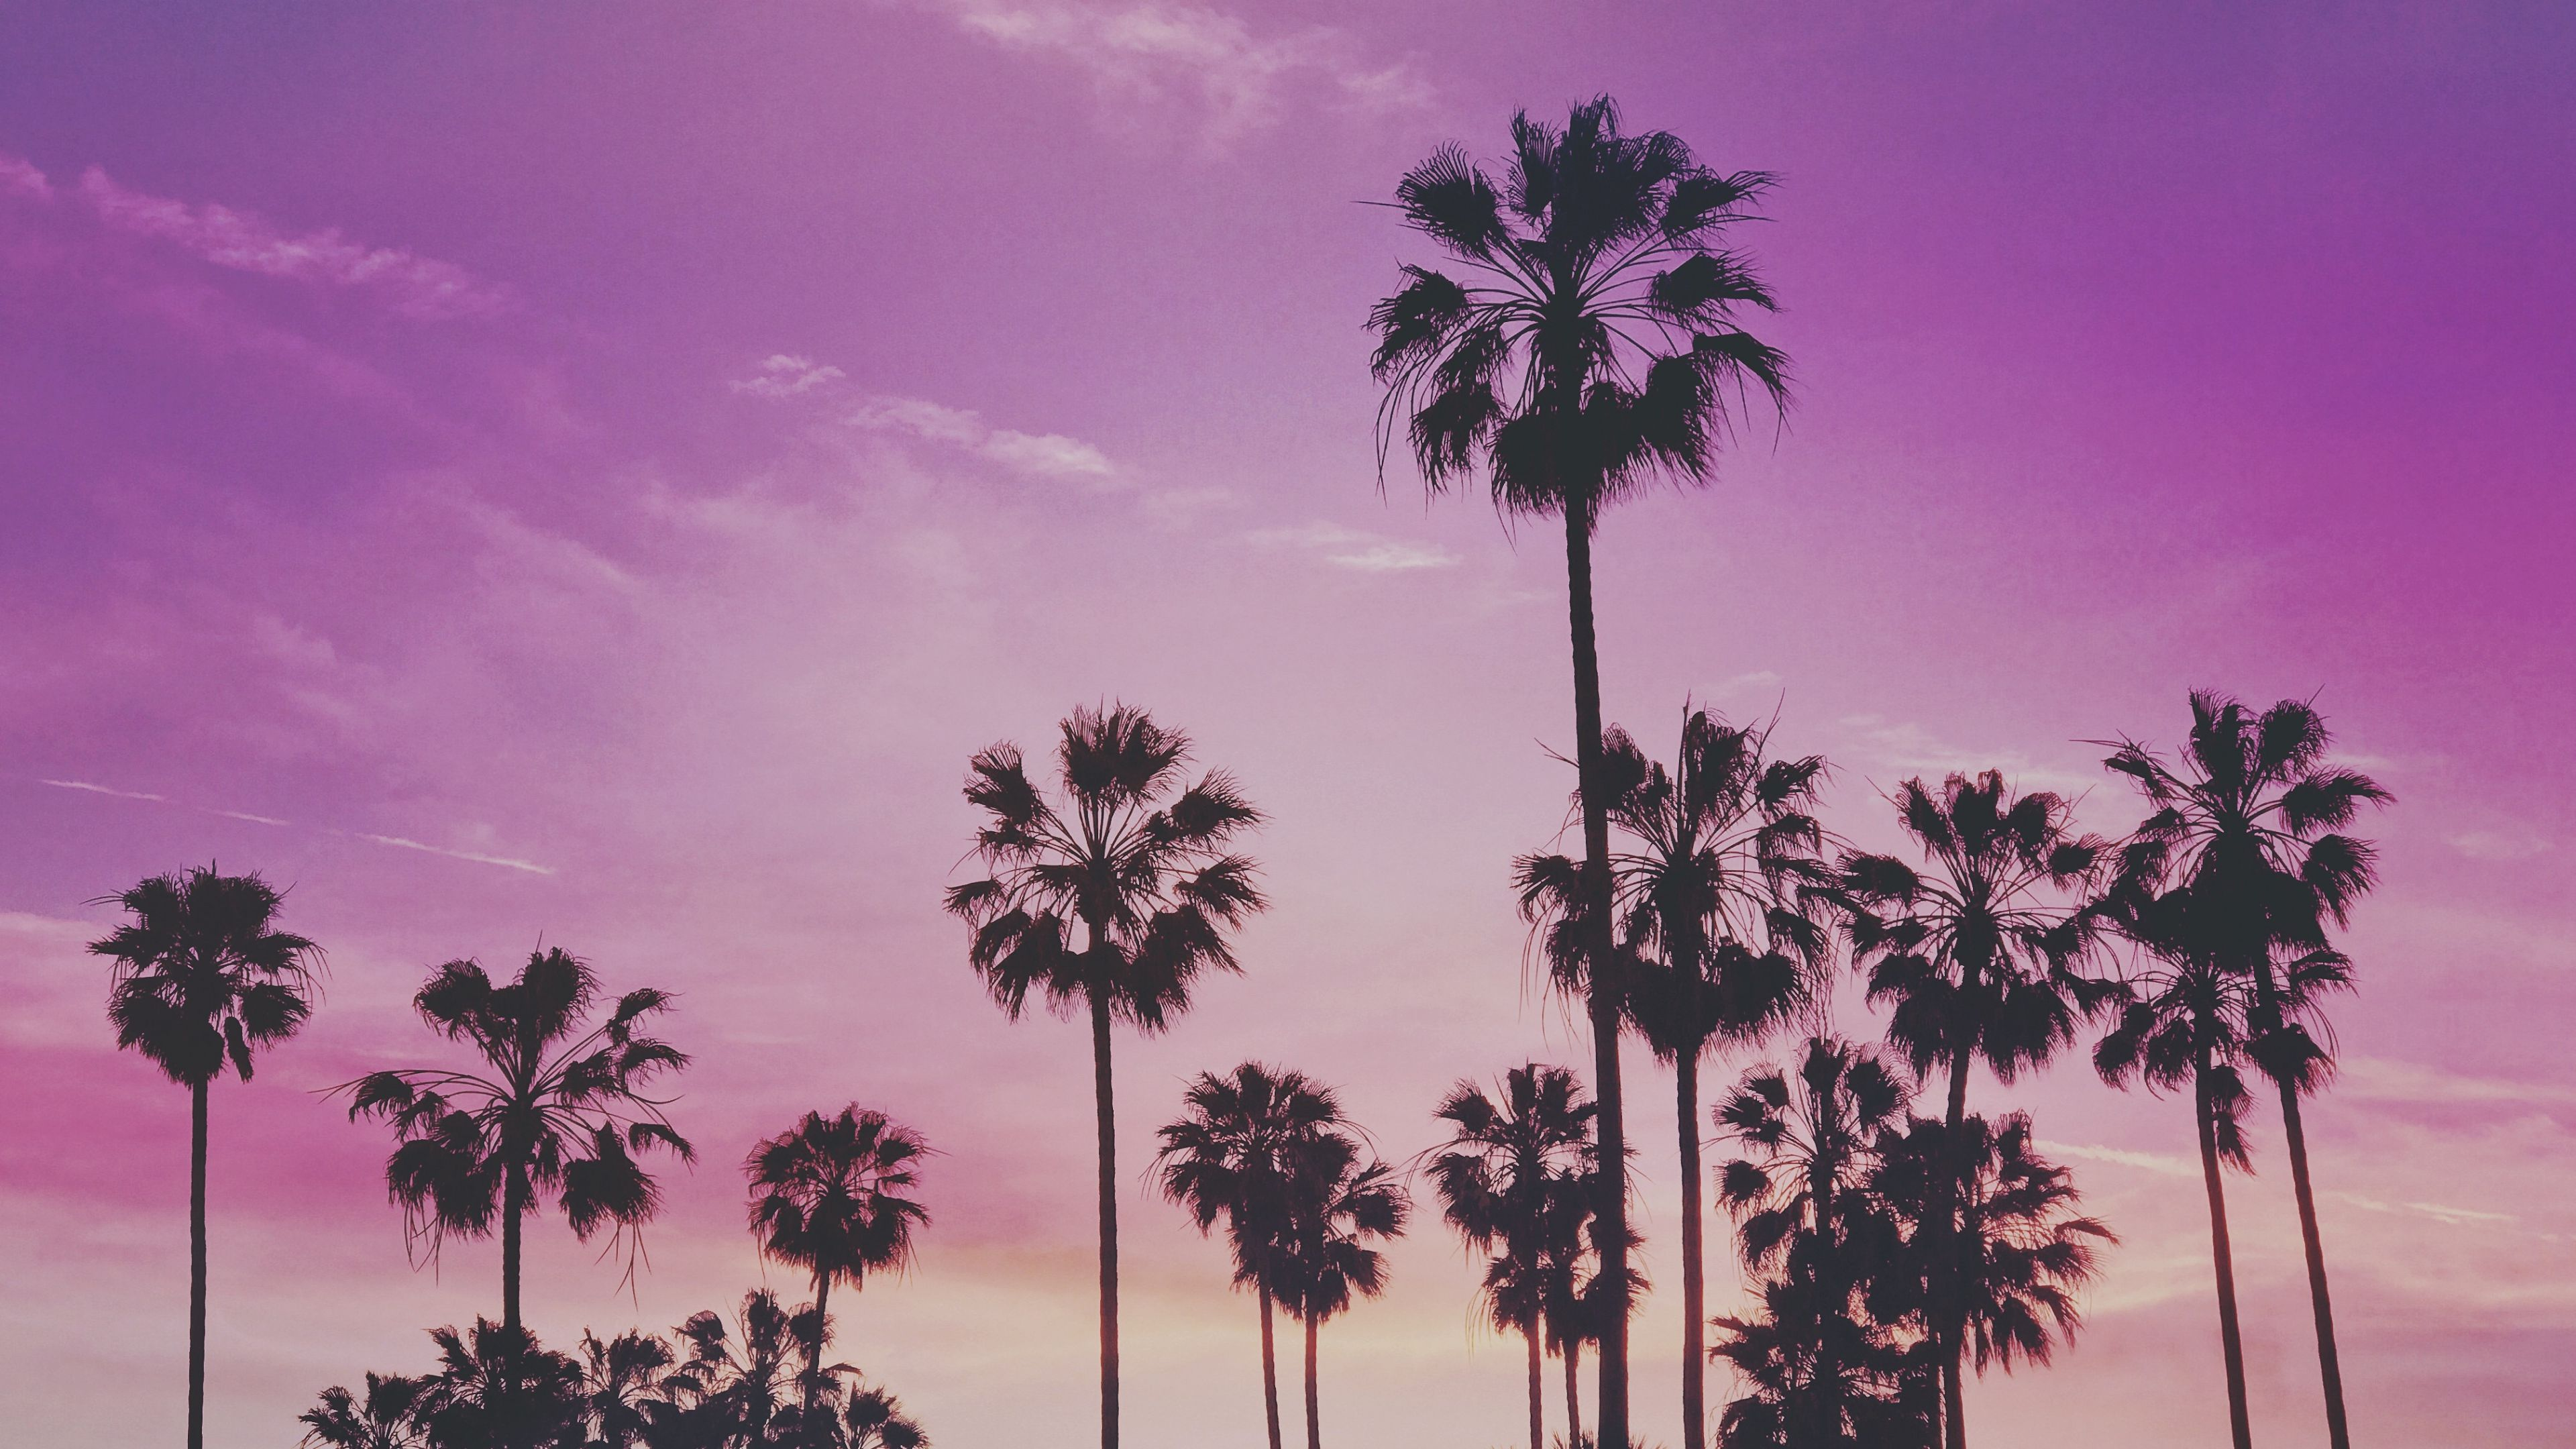 Palms Trees Sunset Is A Hd Wallpaper Posted In Nature Category You Can Download Palms Trees Sunset Hd Wallpaper In Palm Tree Sunset Sunset Wallpaper Wallpaper